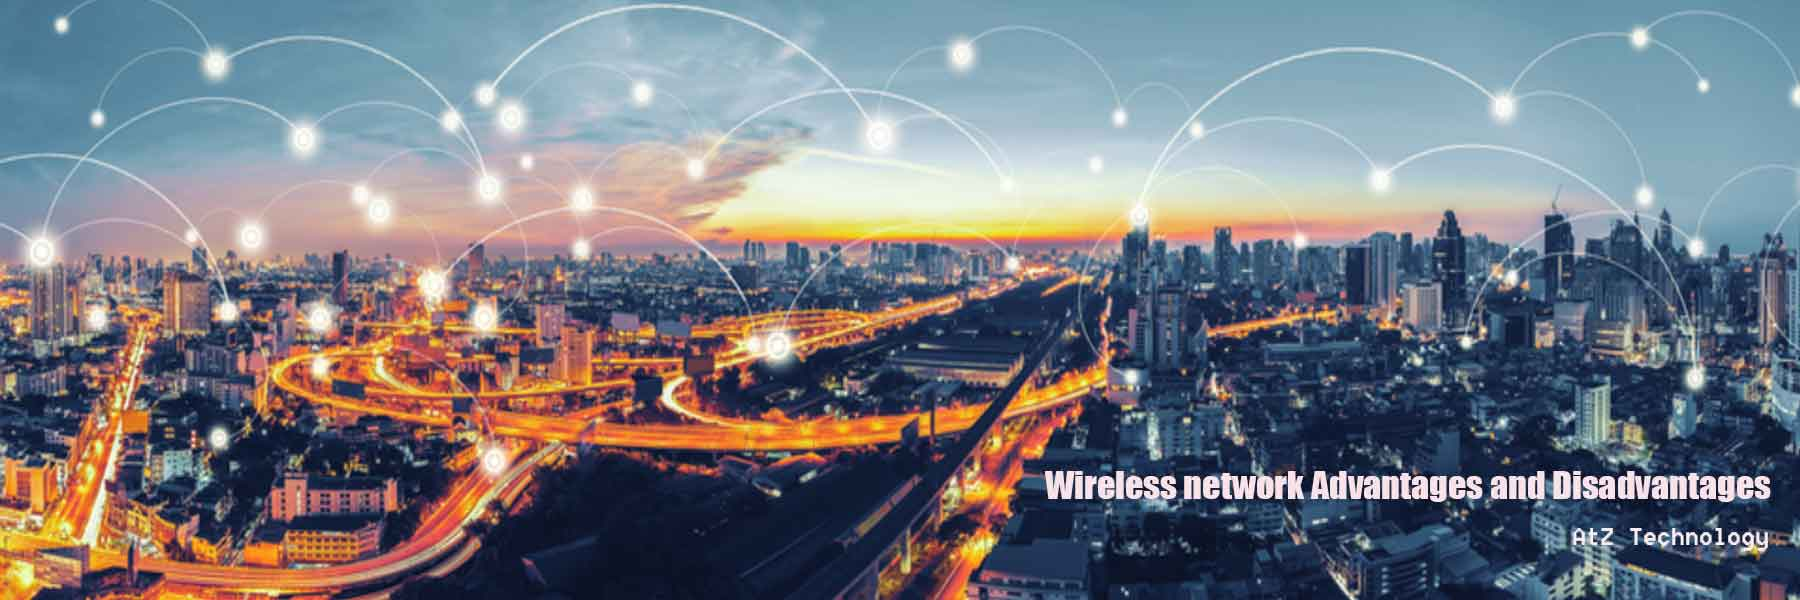 wireless network advantages and disadvantages